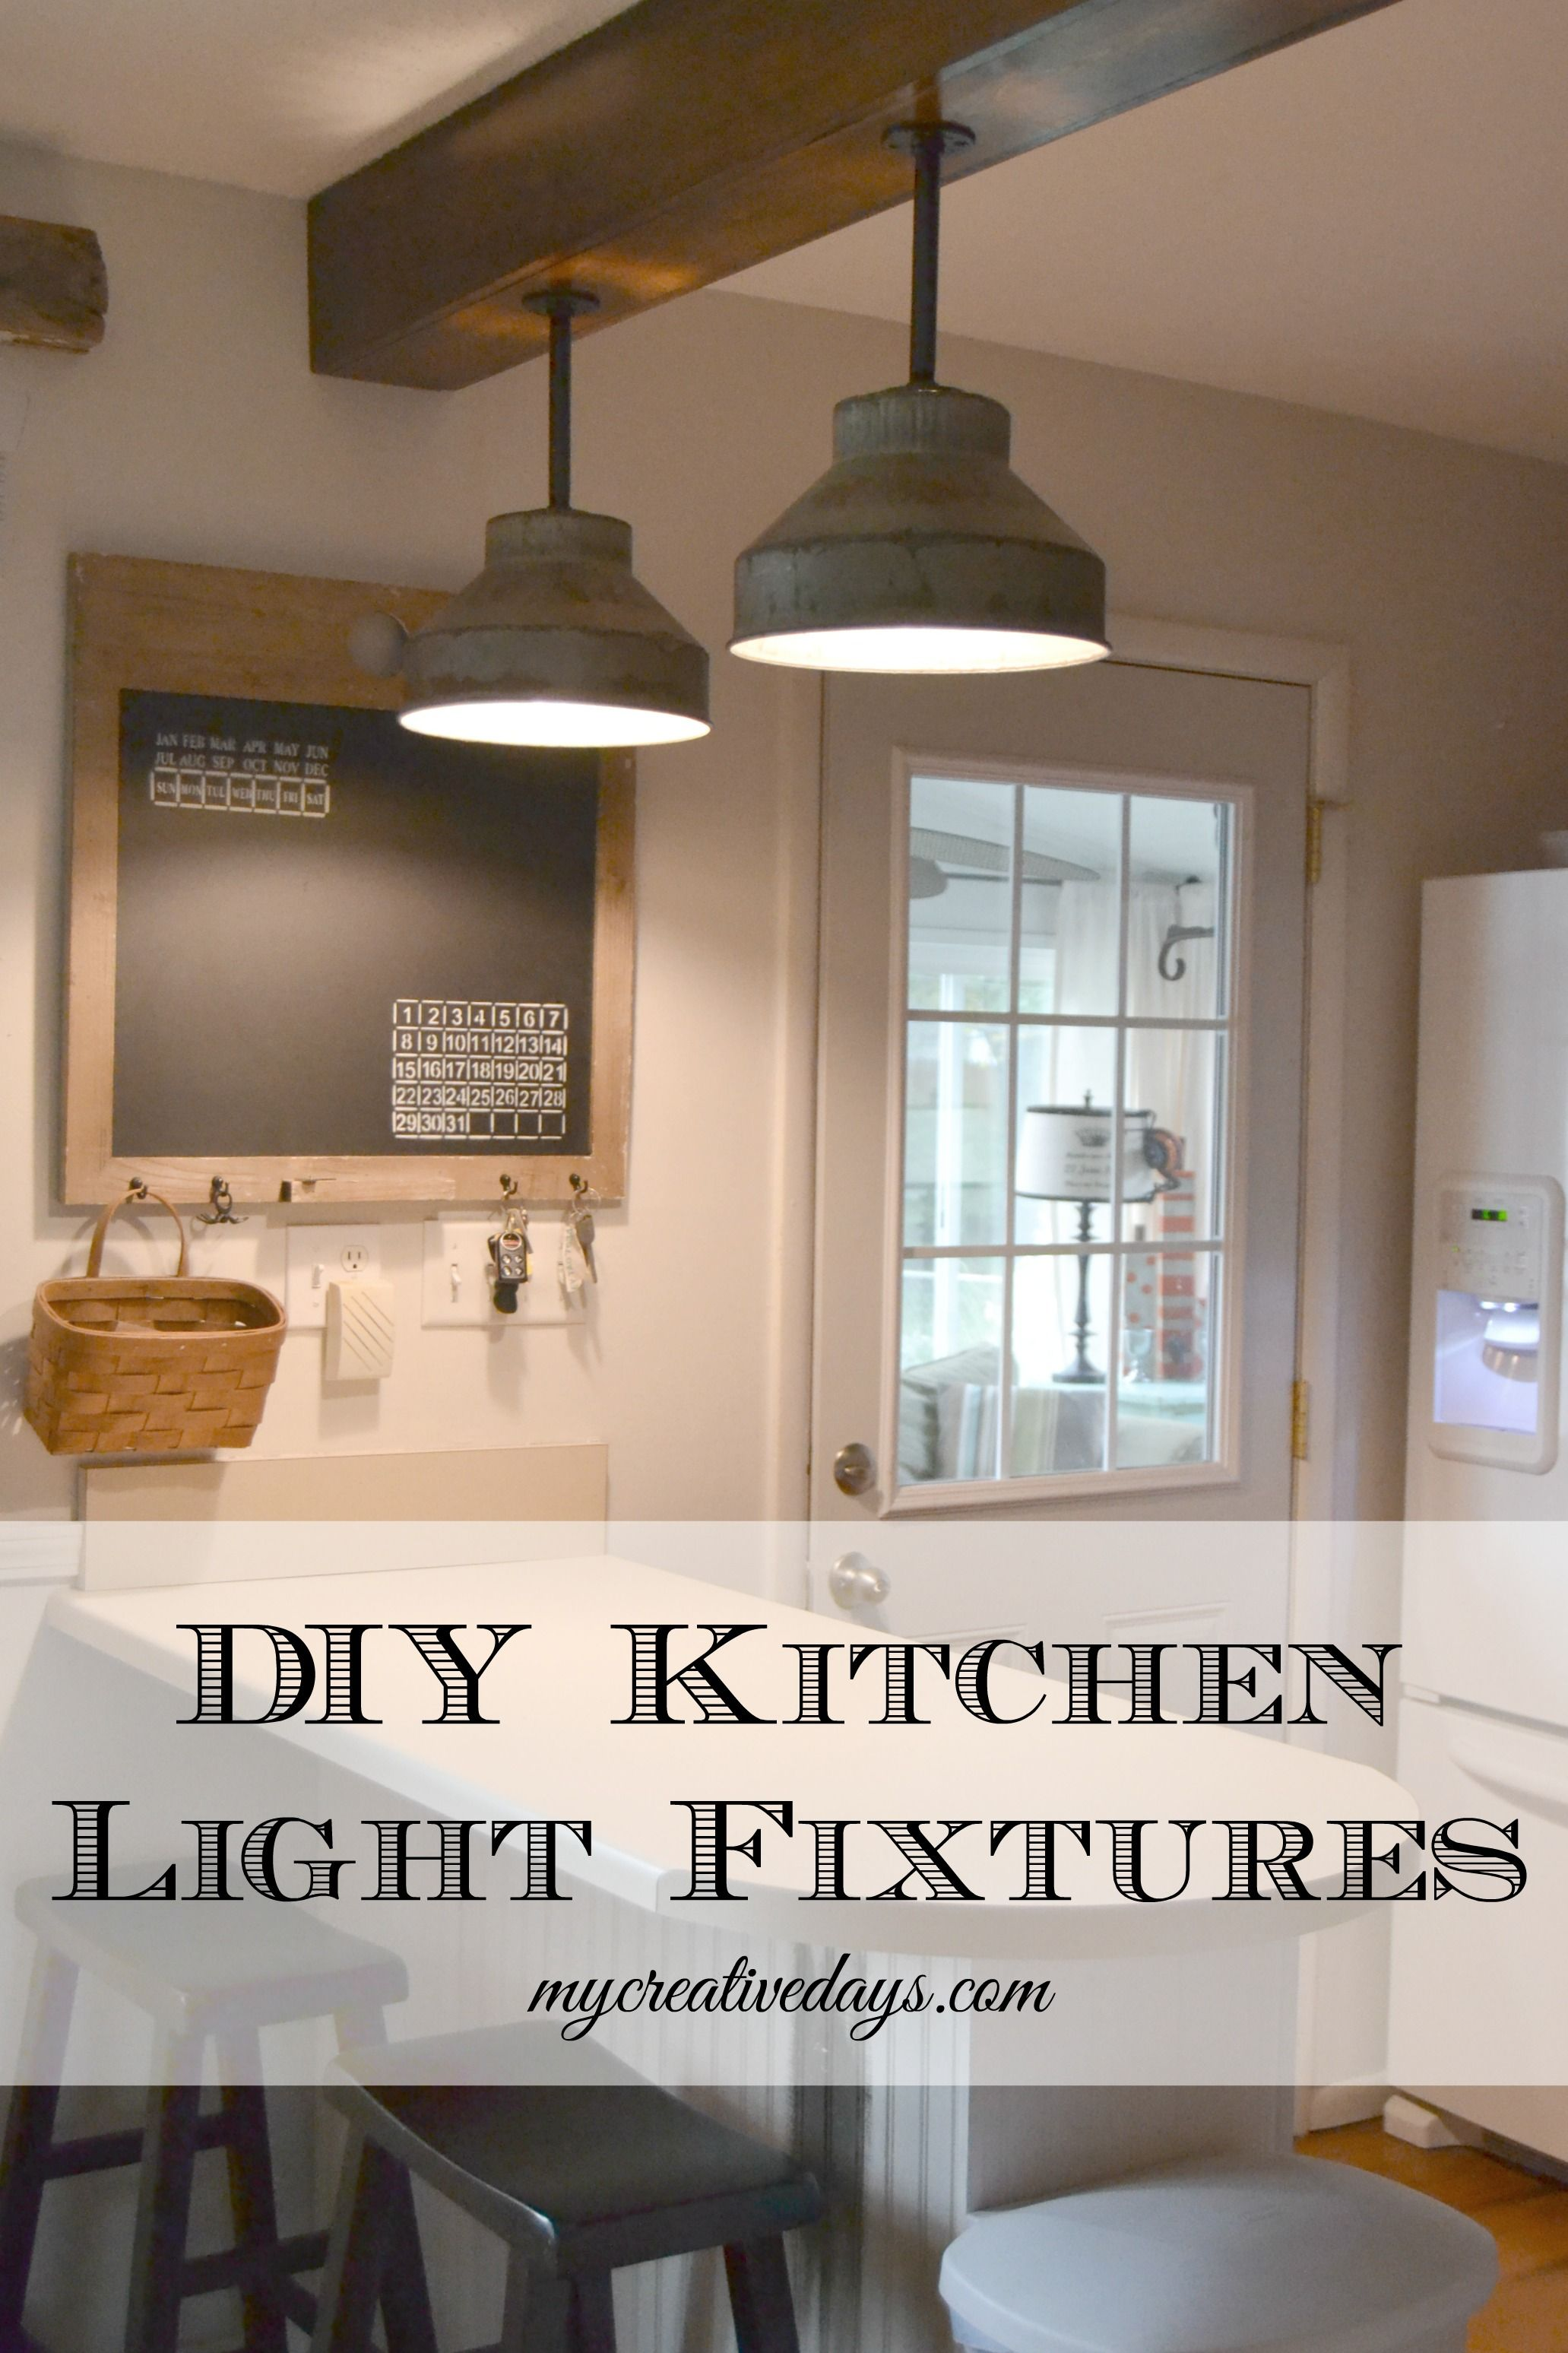 Kitchen Table Light Fixtures Non Slip Work Shoes For Diy The